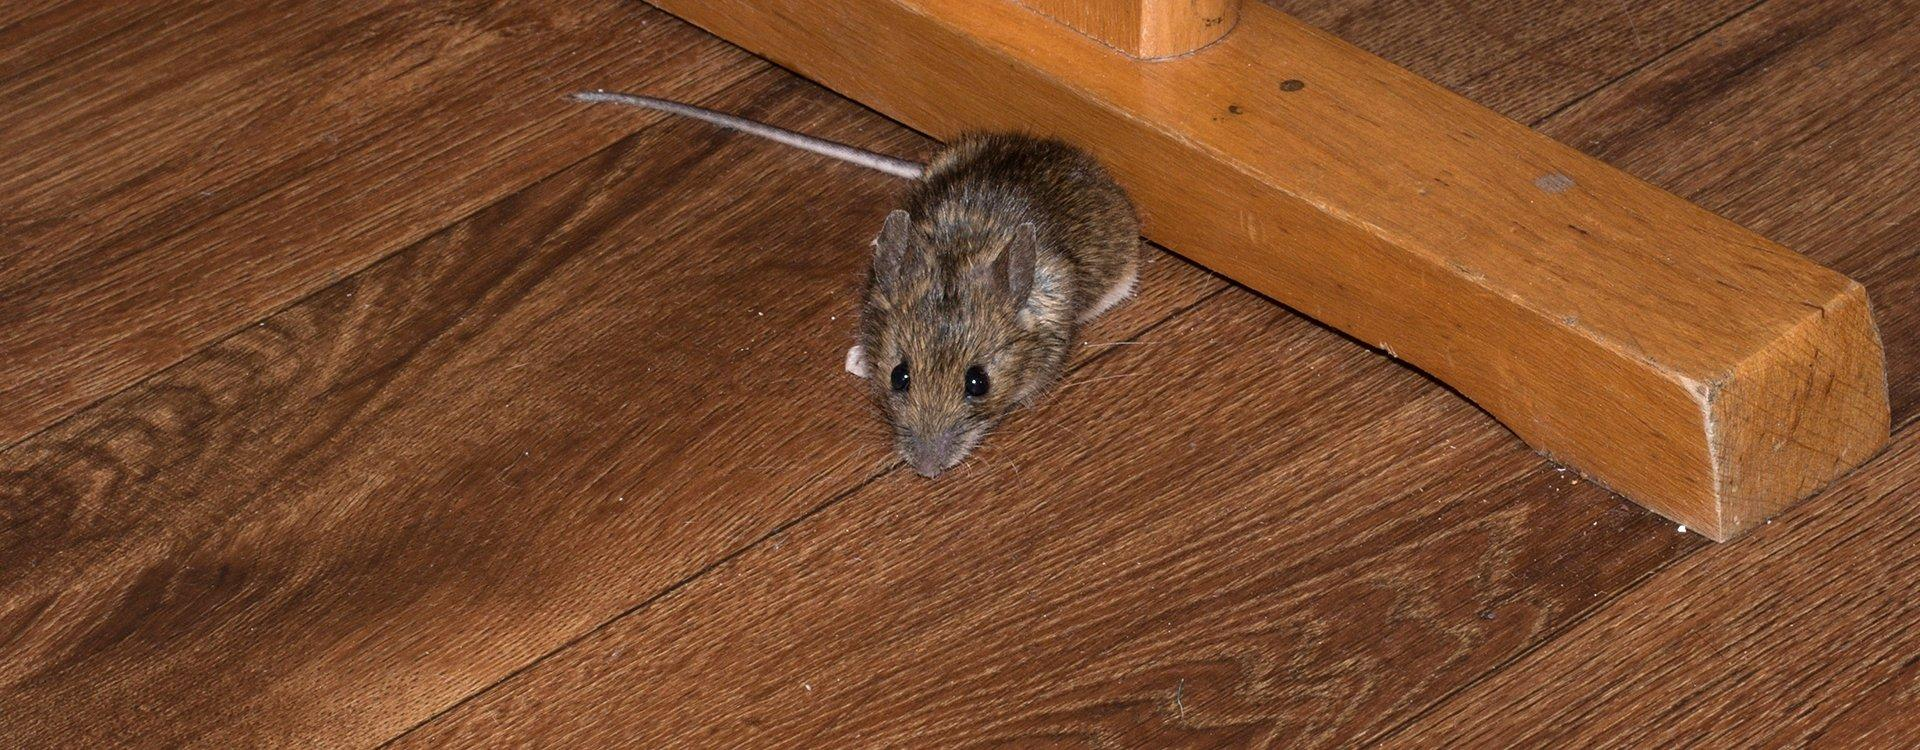 house mouse under a table